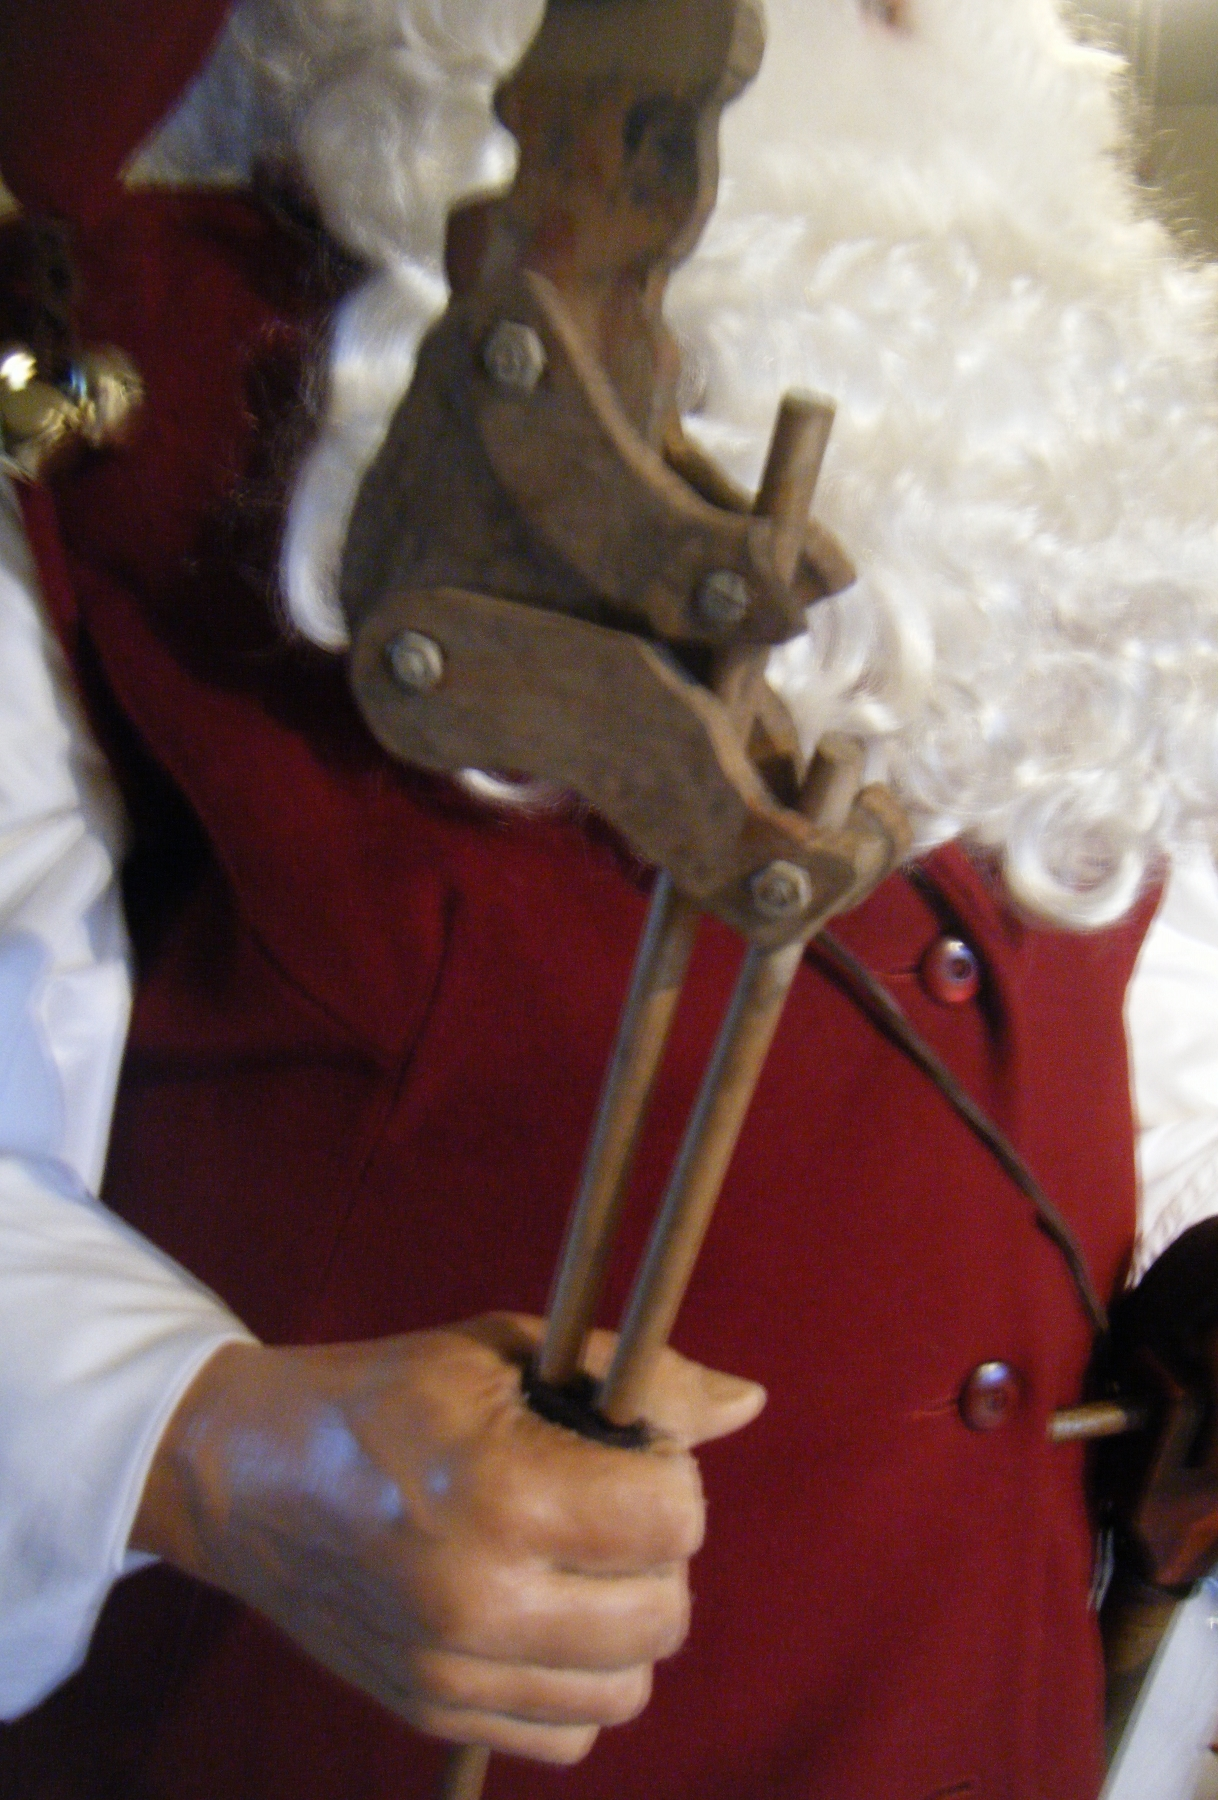 santasworkshop-antiqueclowntoy.jpg?15010